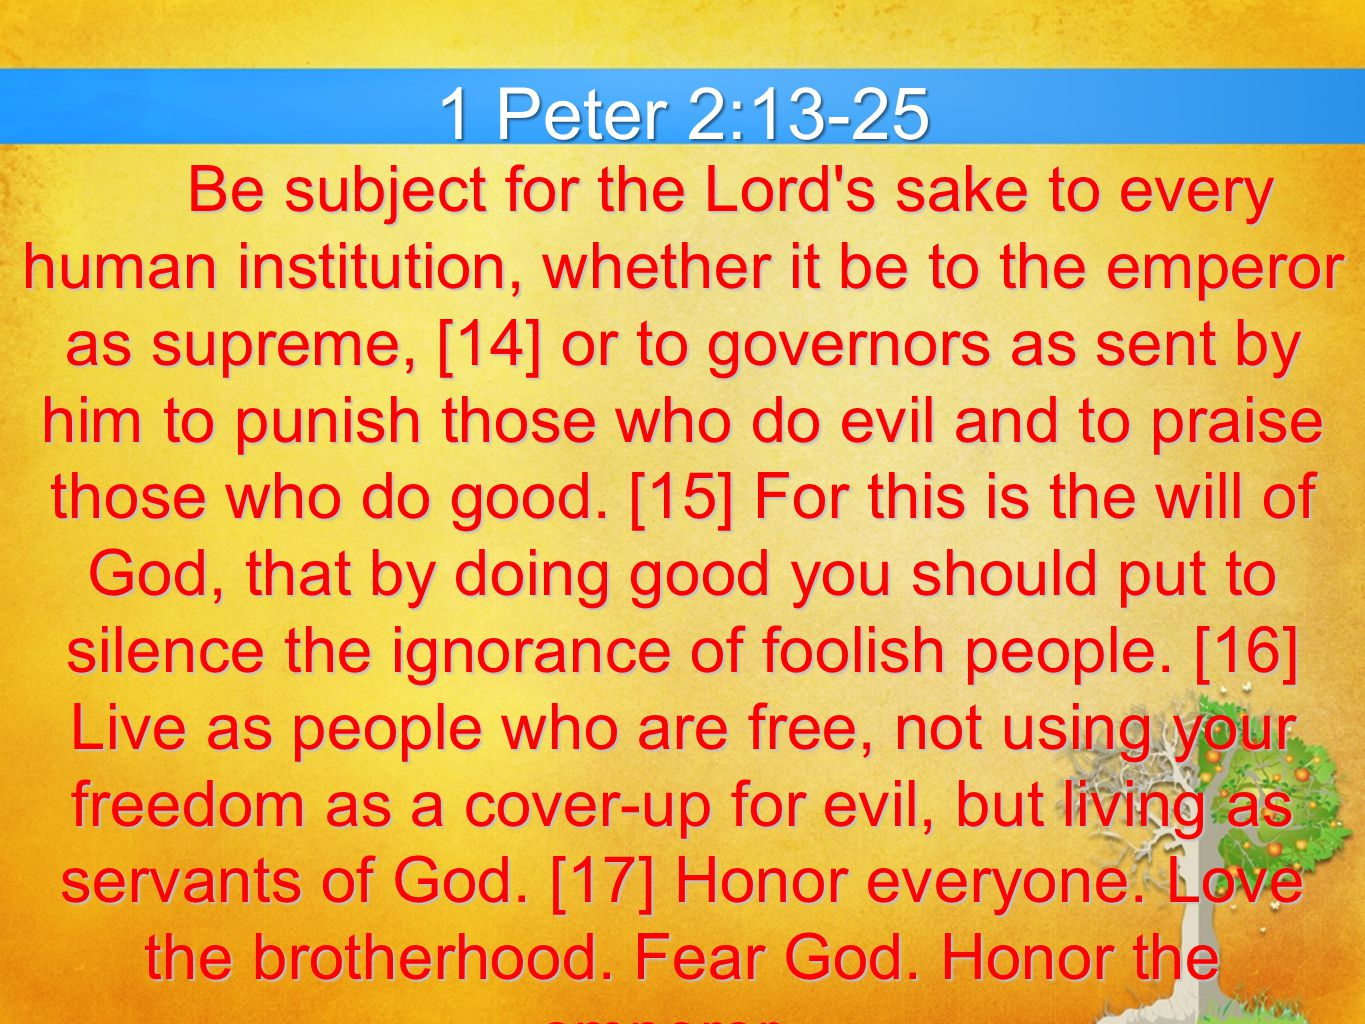 1 Peter 2:13-25 ESV [18] Servants, be subject to your masters with all respect, not only to the good and gentle but also to the unjust.